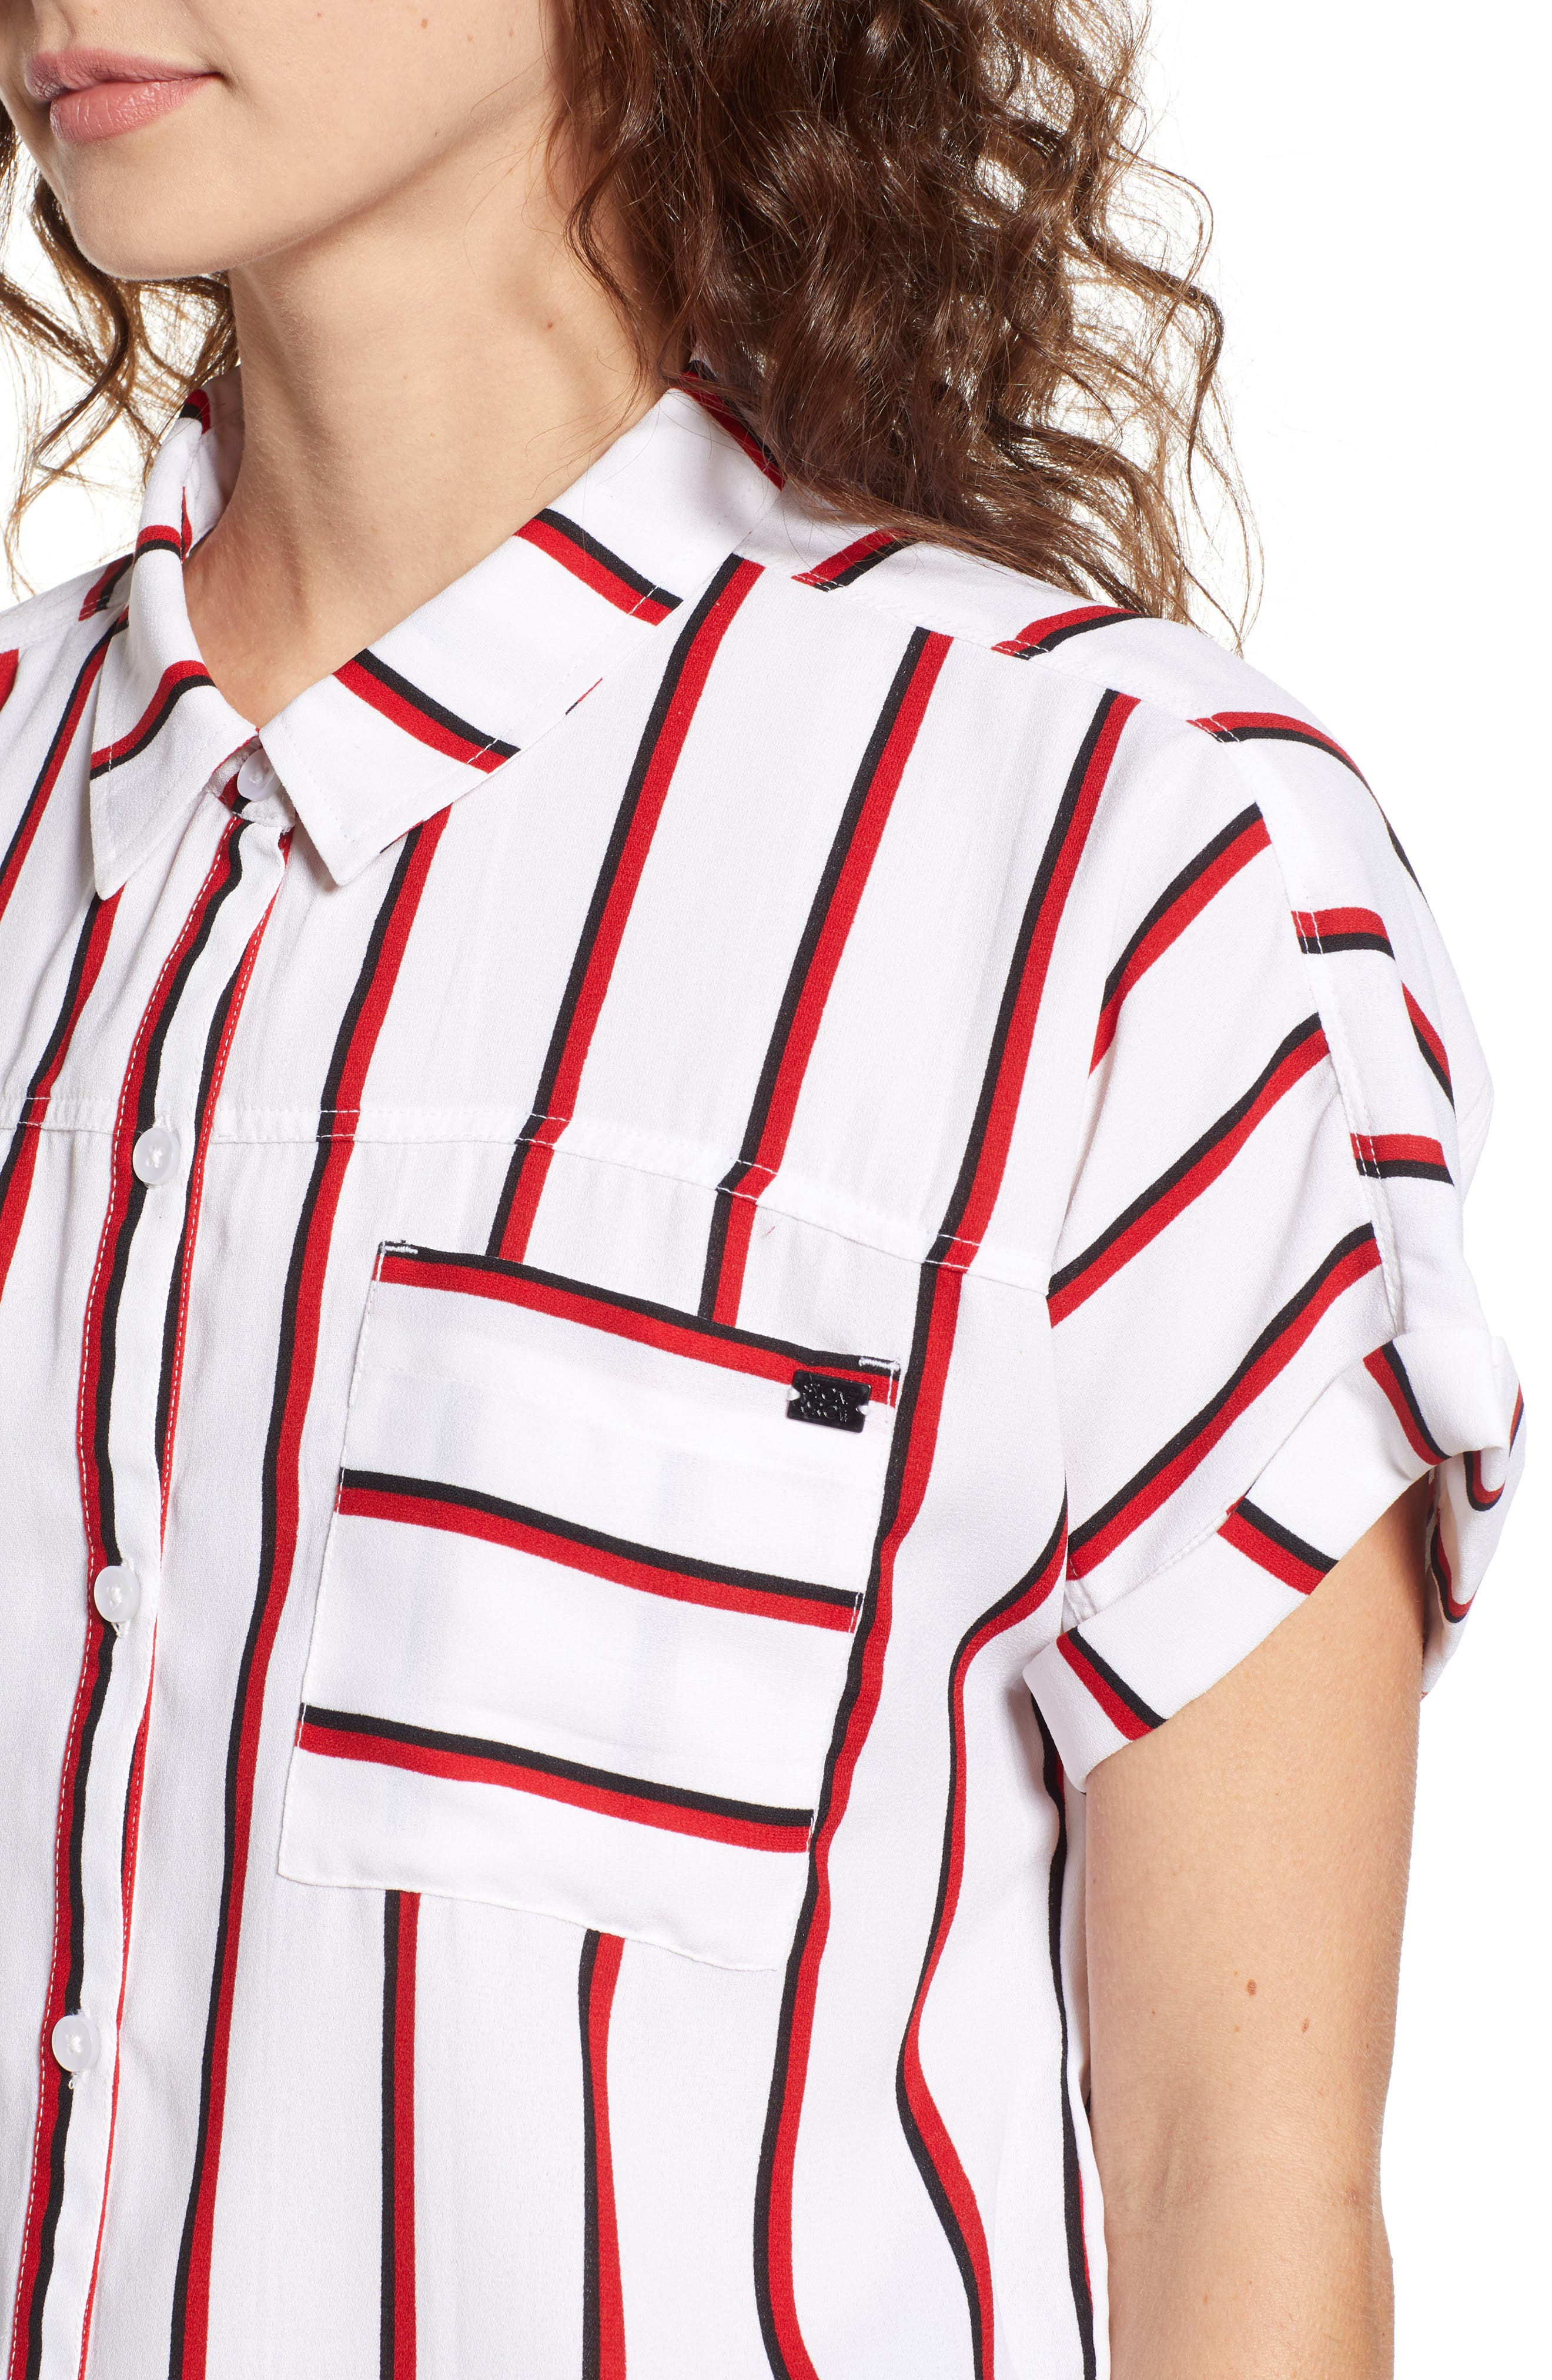 Counting Moons Stripe Top,                             Alternate thumbnail 4, color,                             600